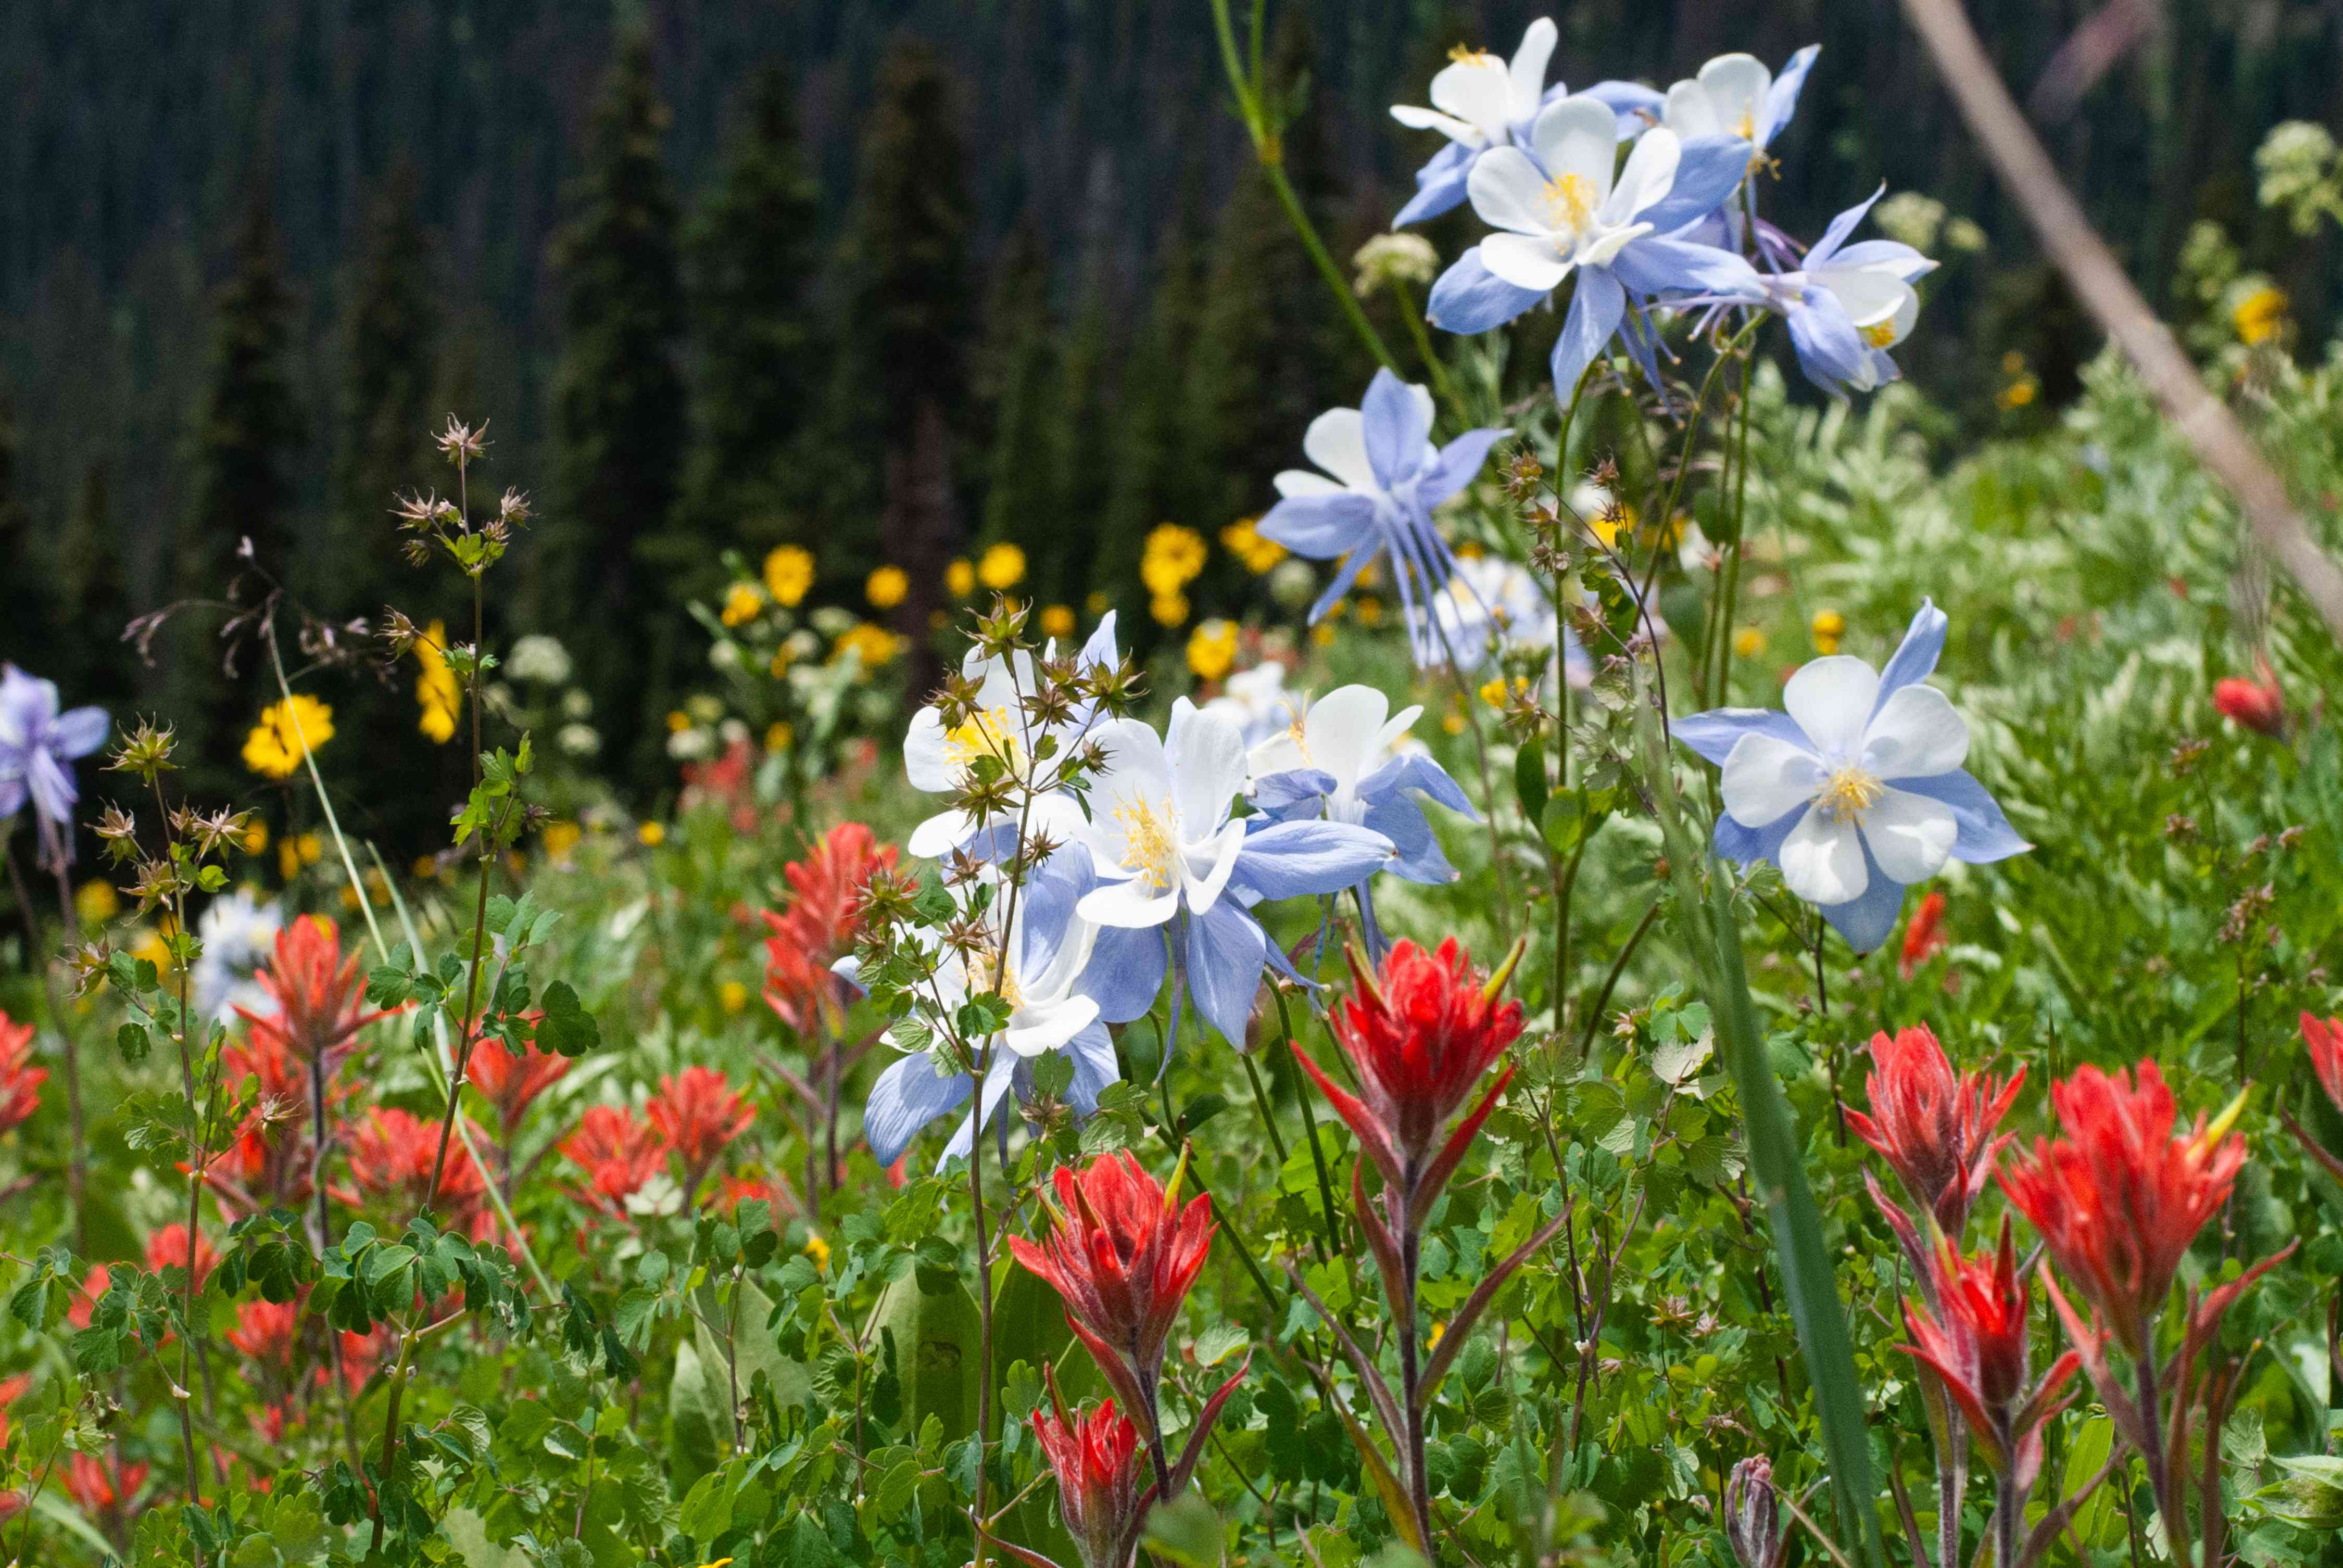 Scarlet painted cup plants with red bract flowers growing in garden with light blue and yellow flowers